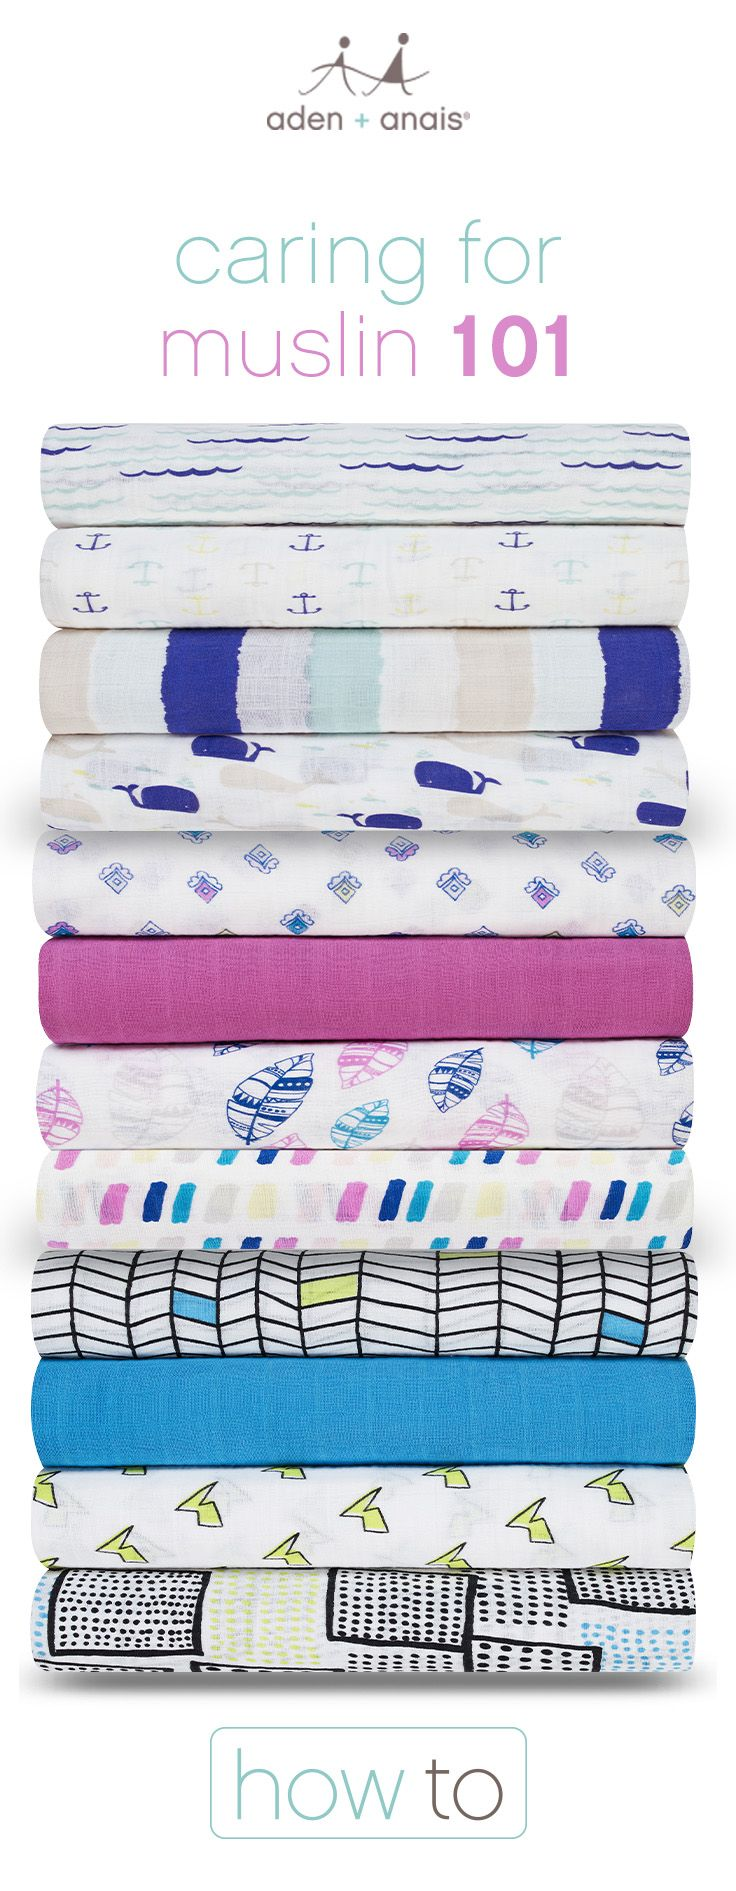 Here are a few tips to keep your aden + anais muslin items looking fresh and new.